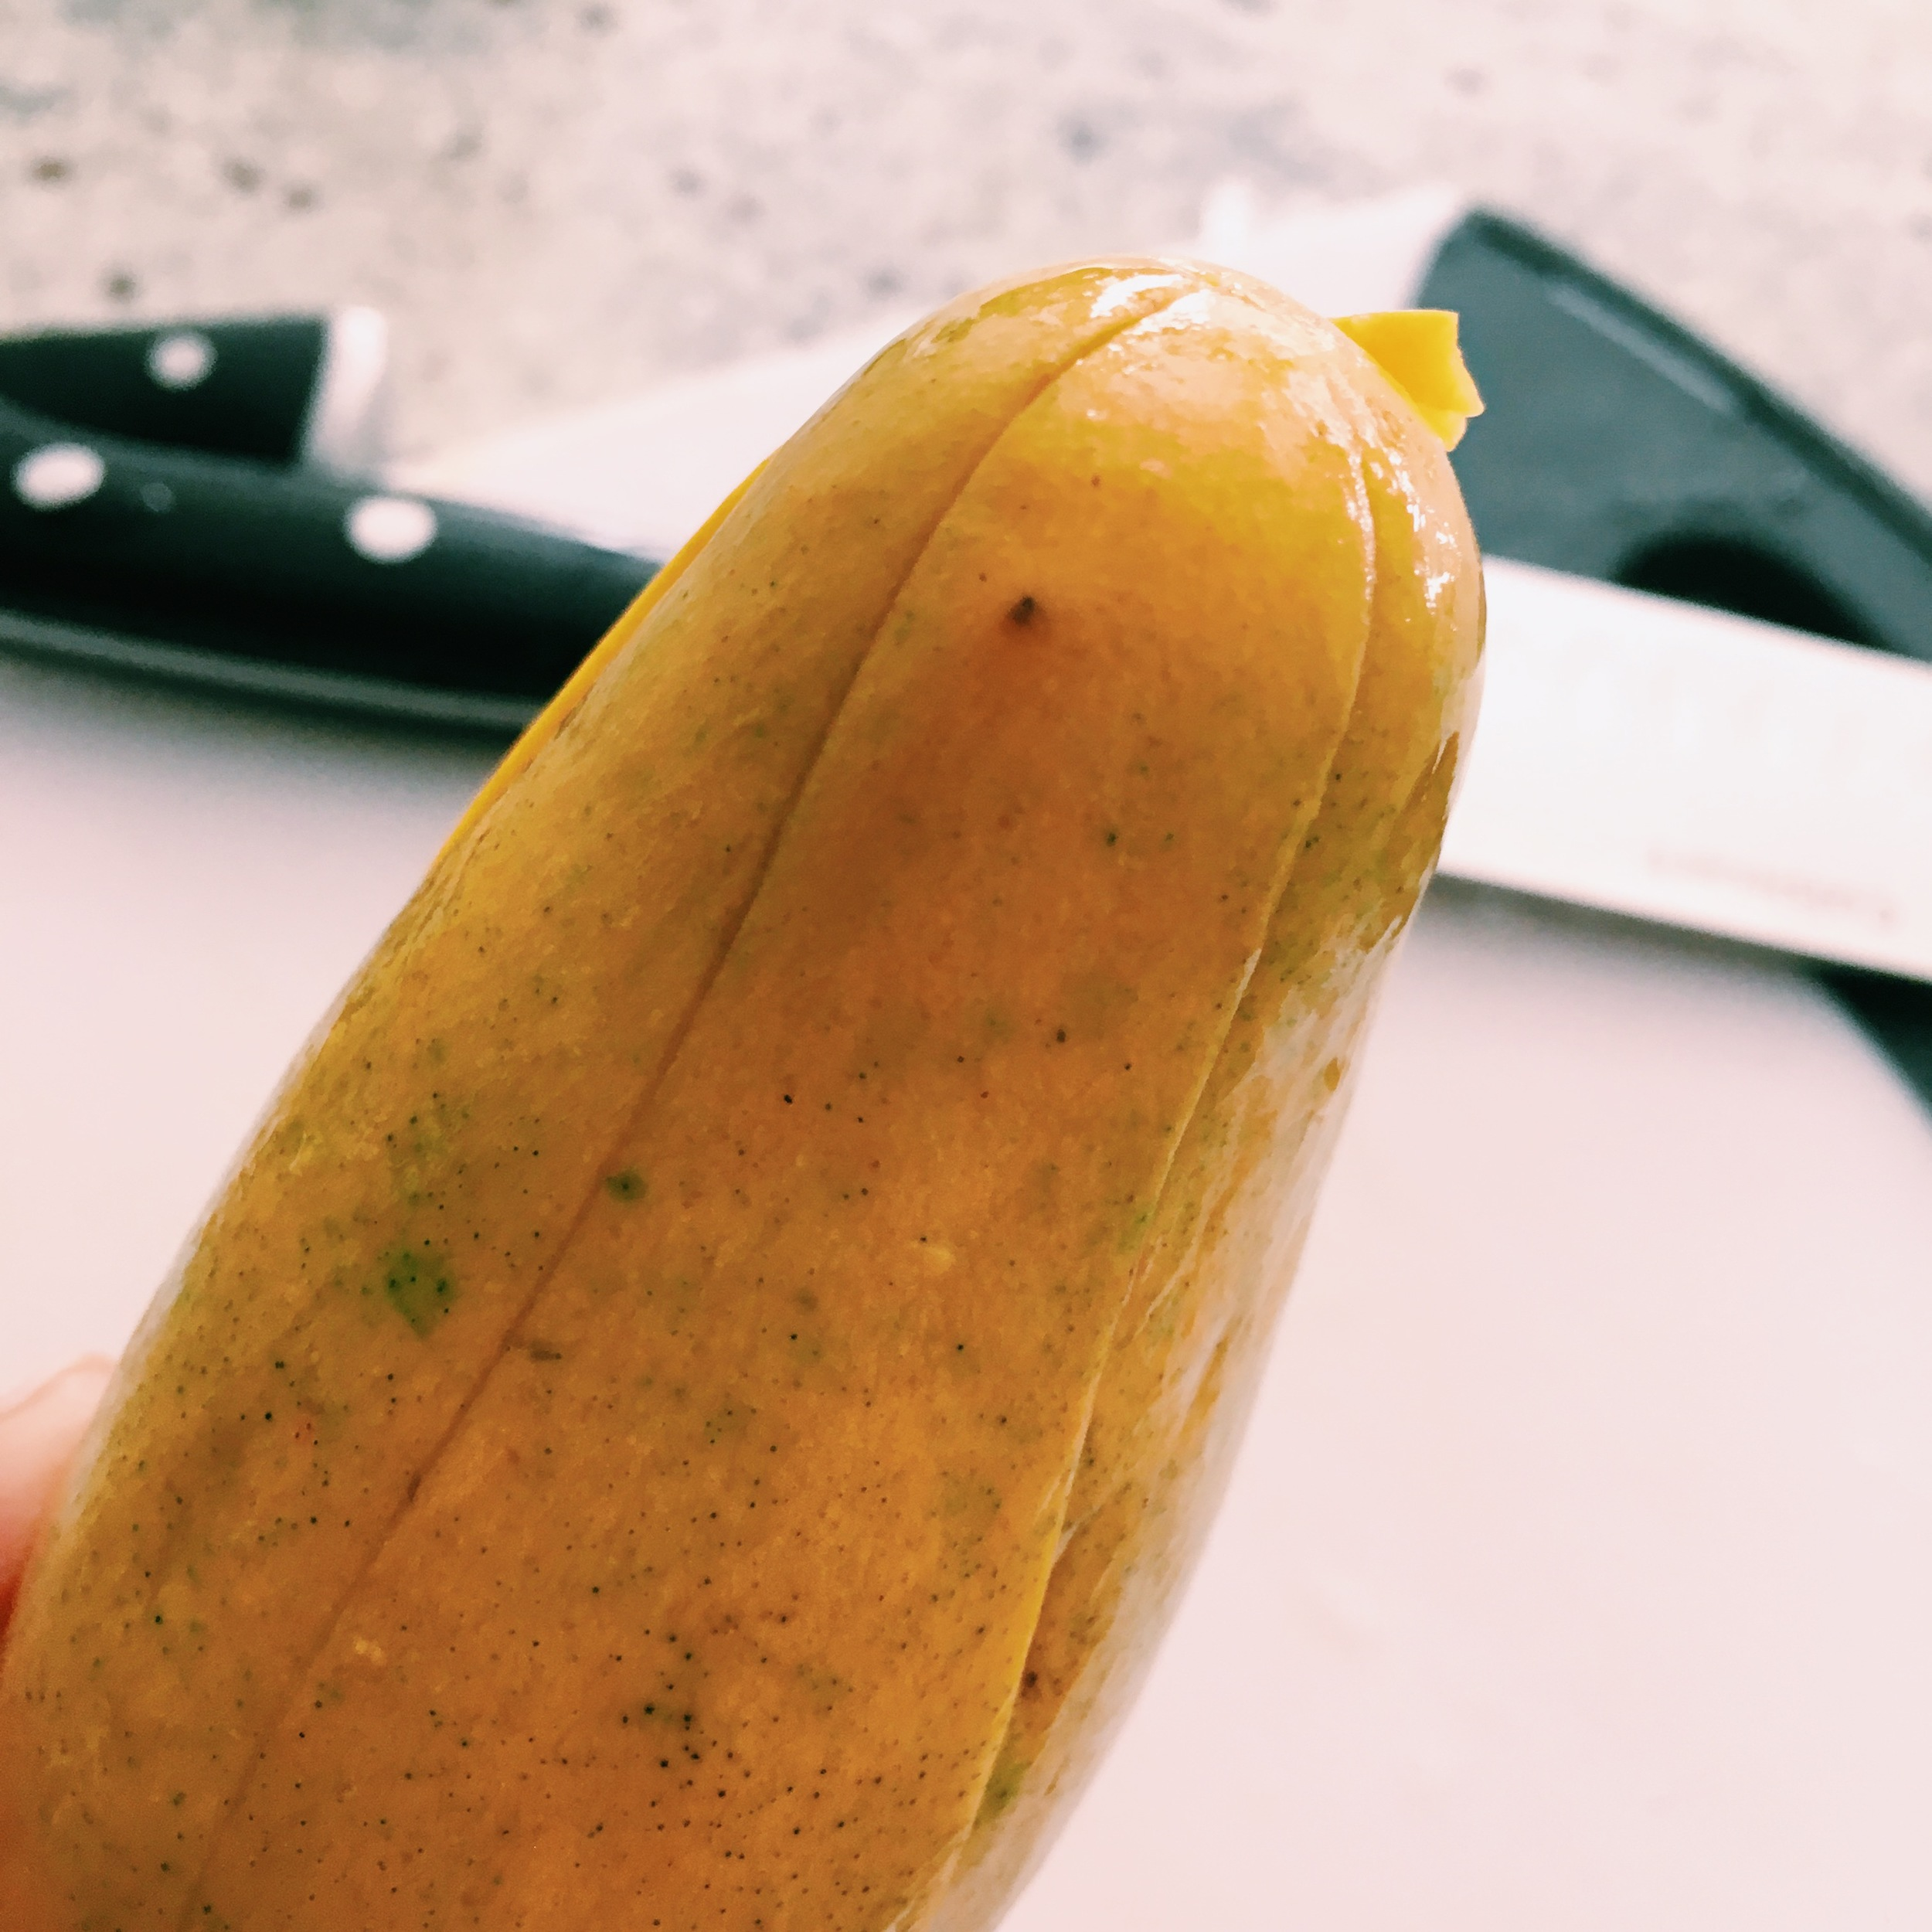 STEP 1: WITH A KNIFE, MAKE VERTICAL INCISIONS FROM THE TOP OF THE MANGO DOWN.